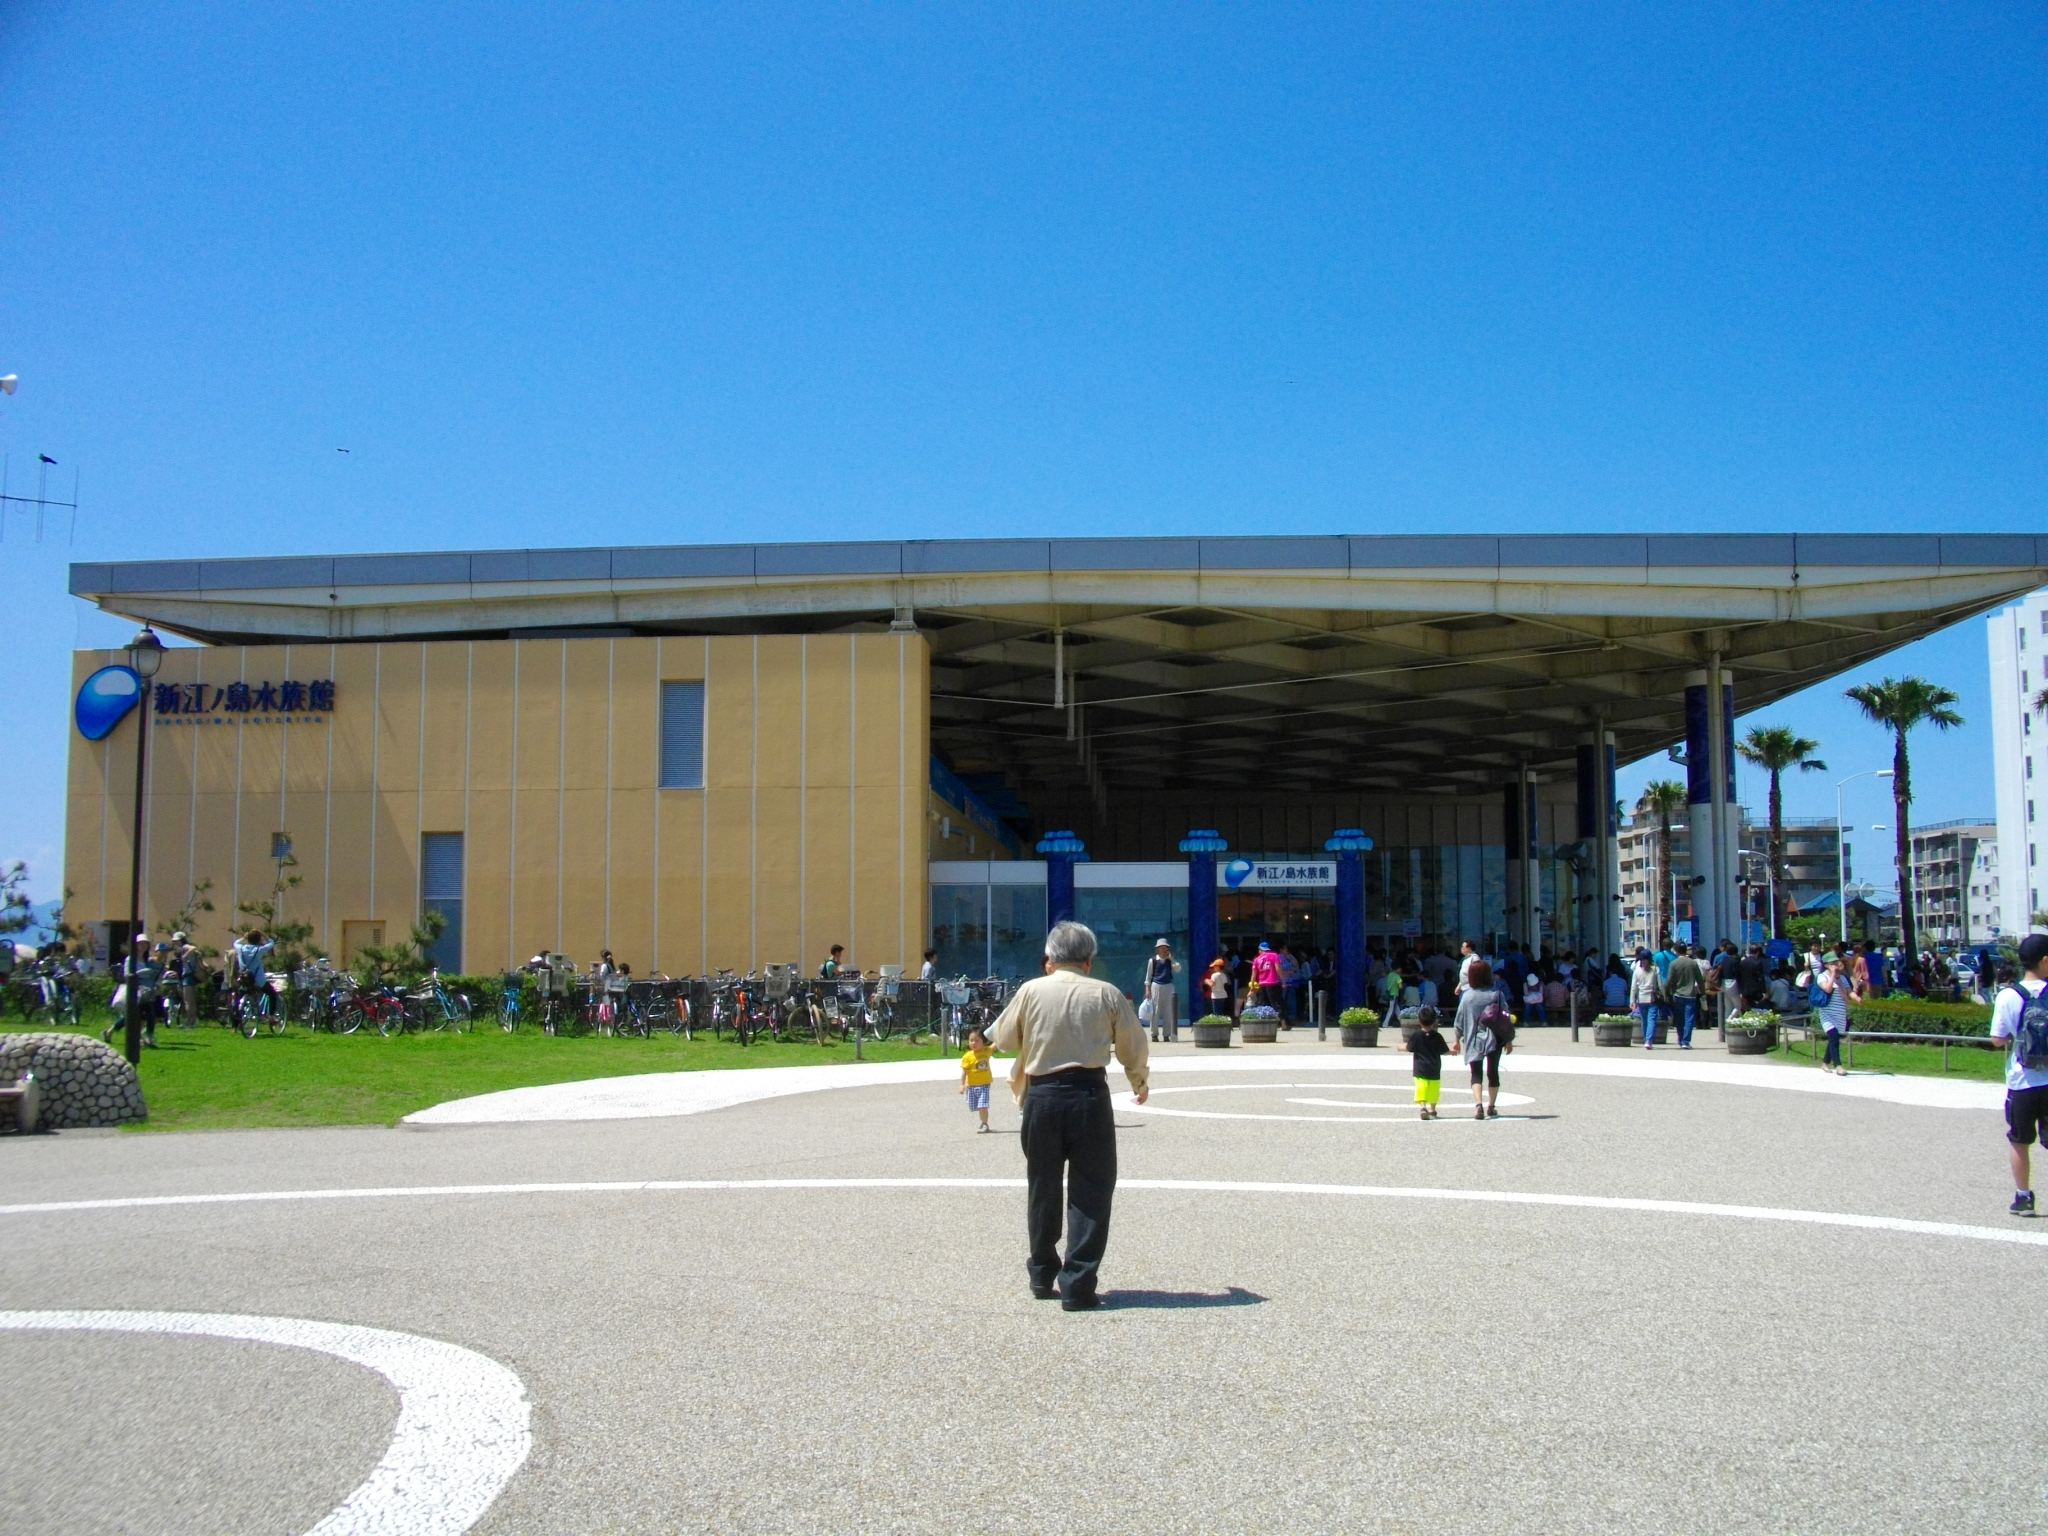 https://upload.wikimedia.org/wikipedia/commons/e/ec/New_Enoshima_Aquarium.JPG